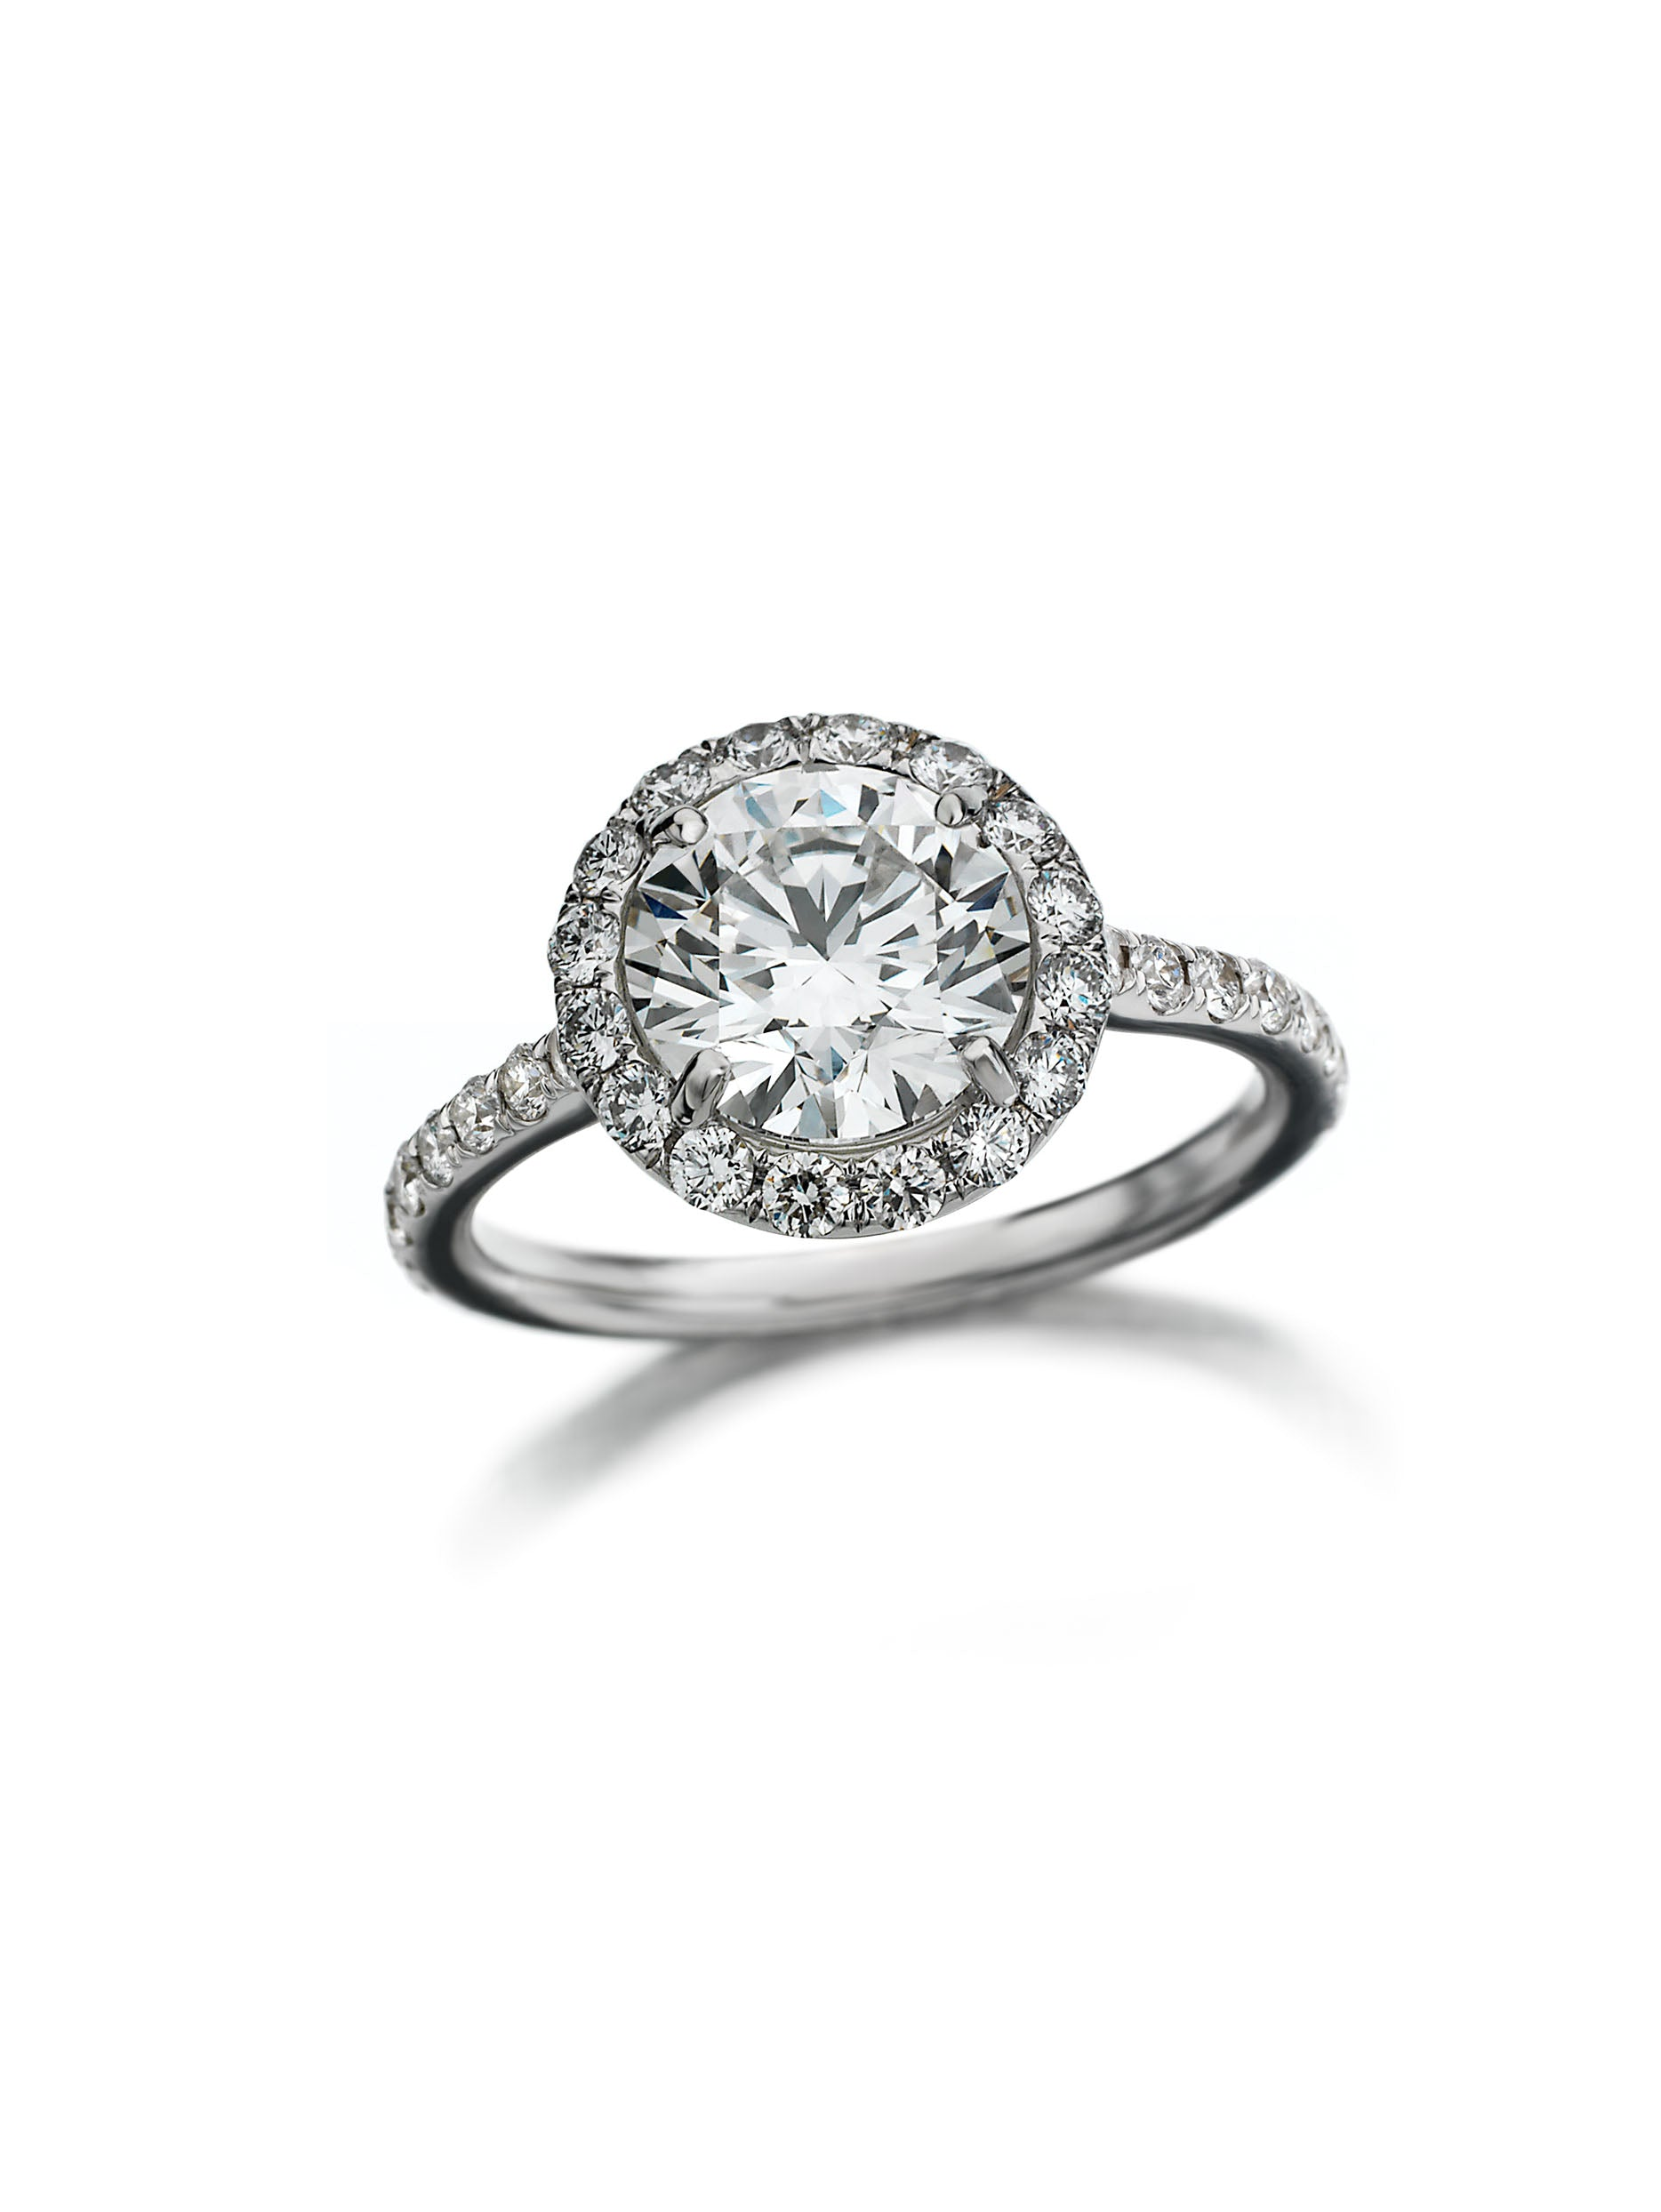 Classic Maria Canale Halo Engagement Ring